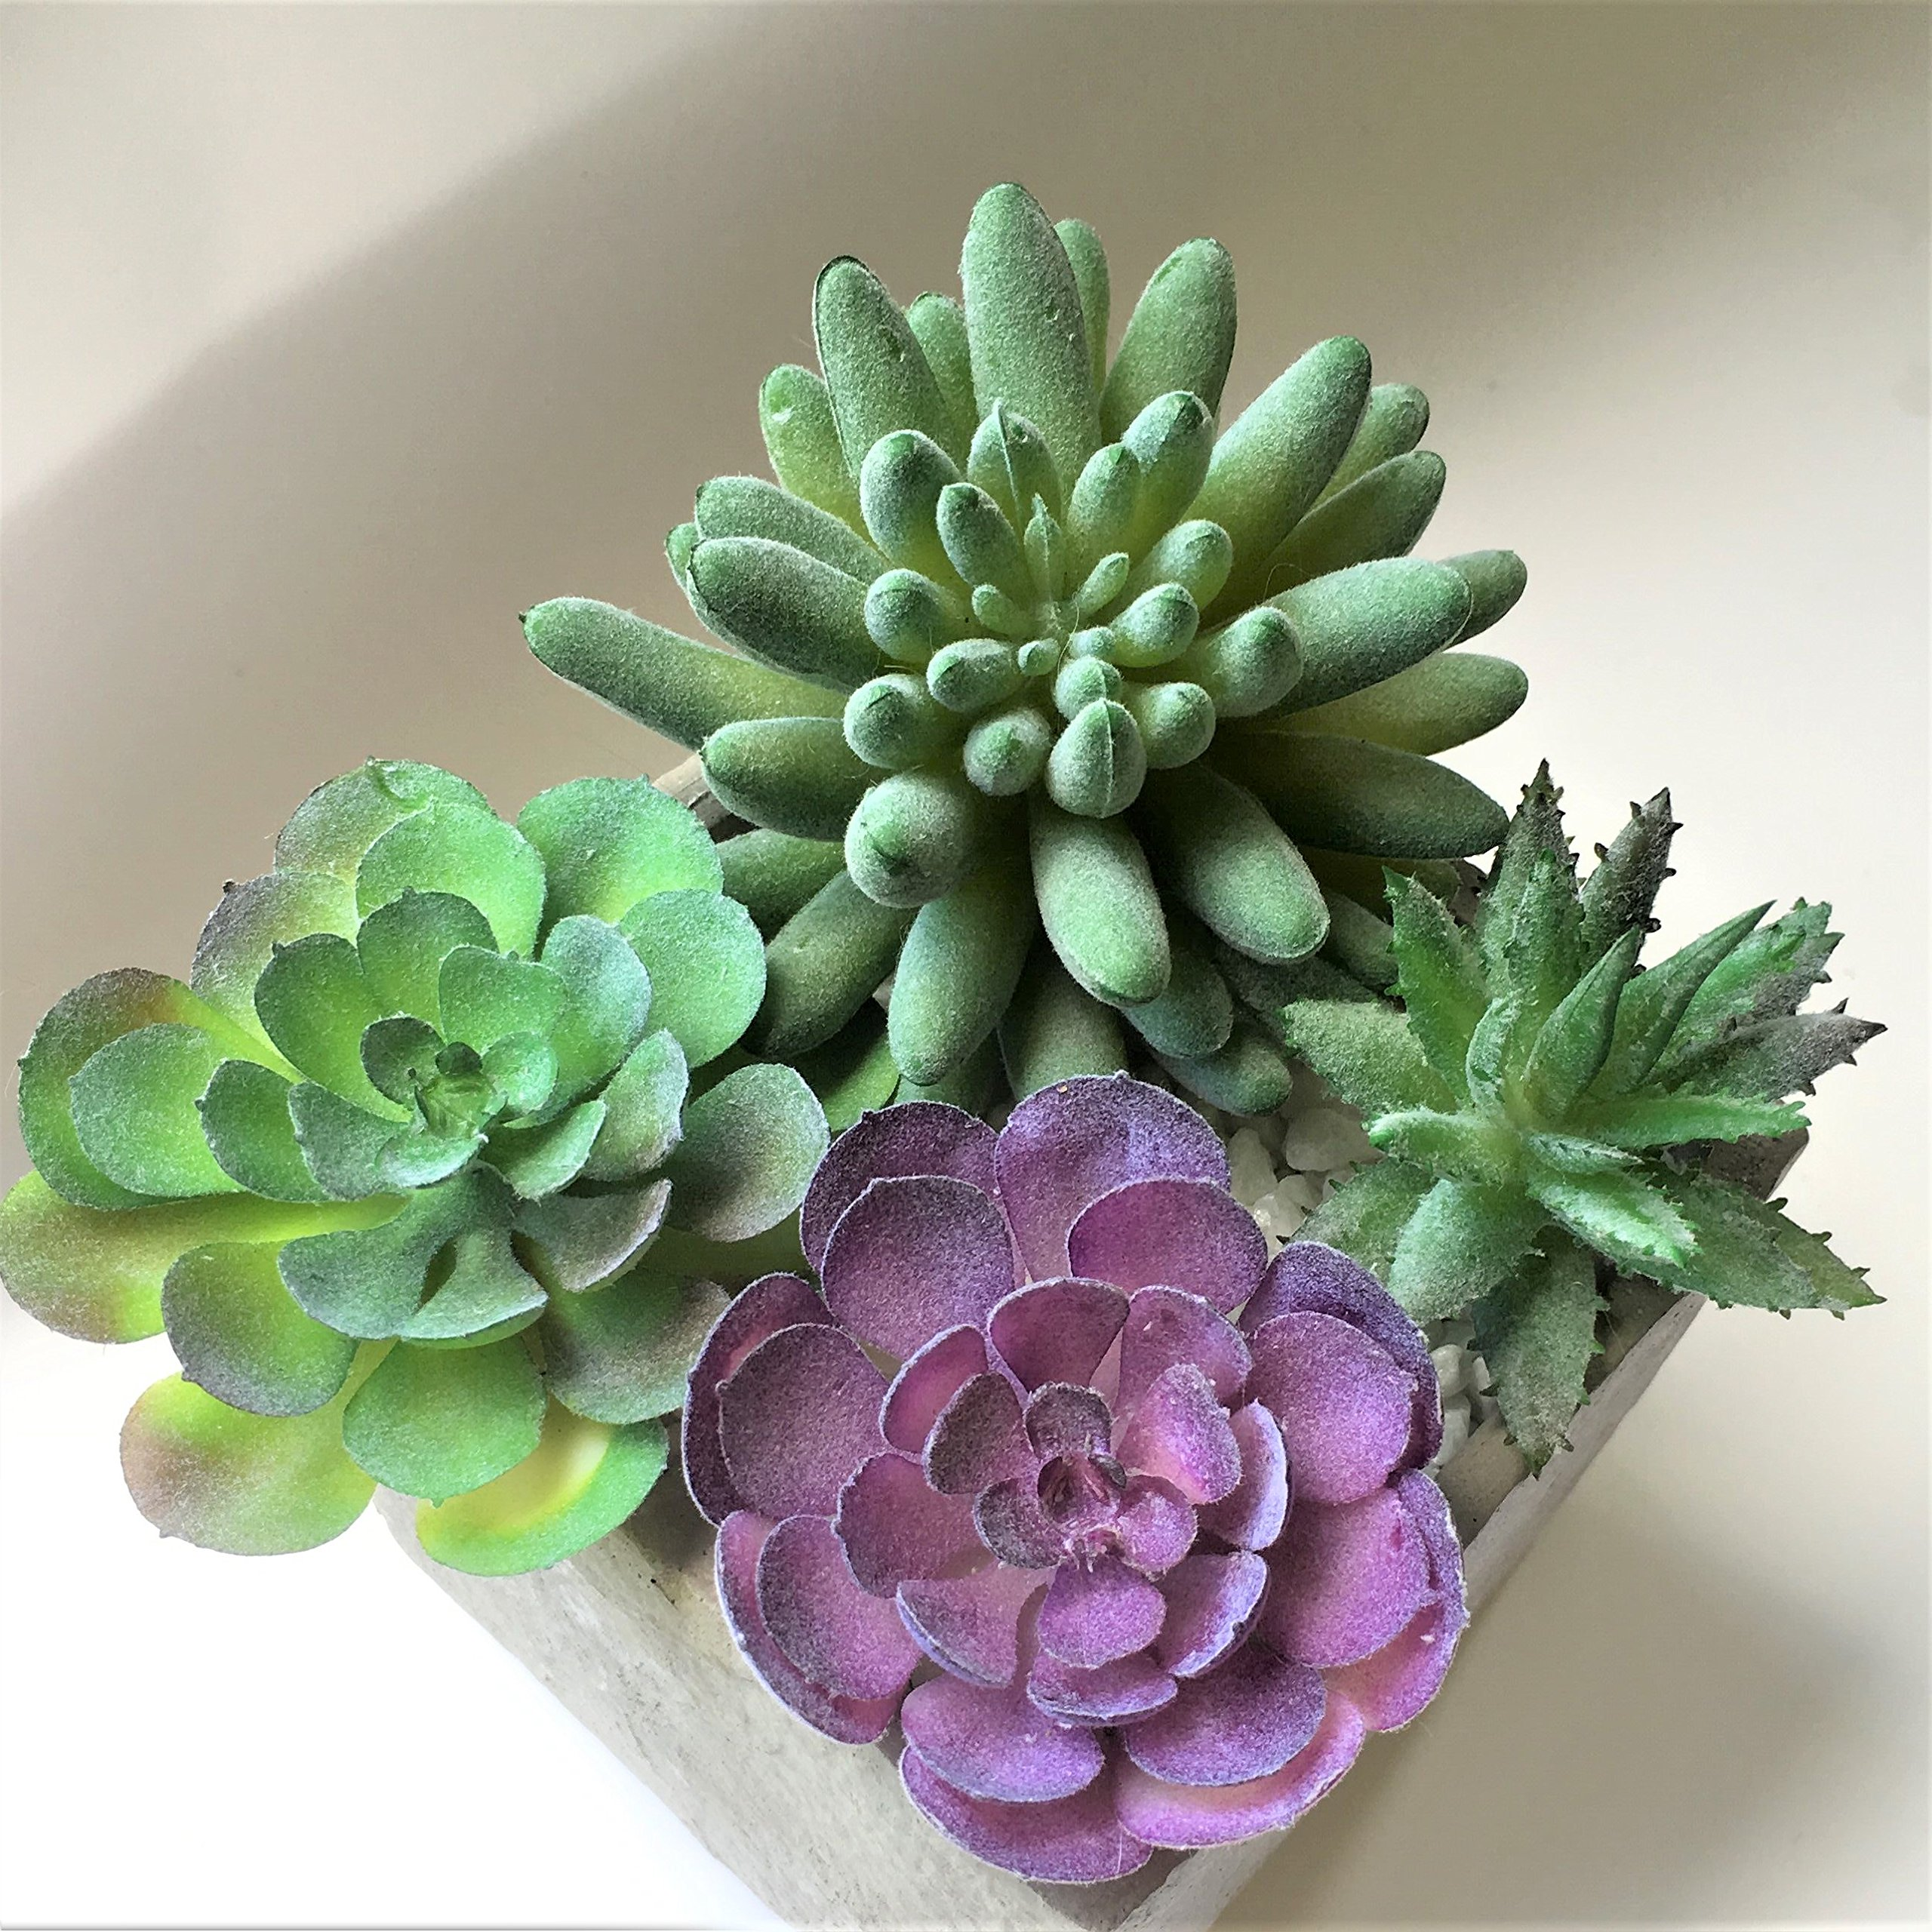 A-FUN Realistic Fake Artificial Succulent Plants Unpotted Fake Cactus for Home Gardern Diy Decoration 4 PCS